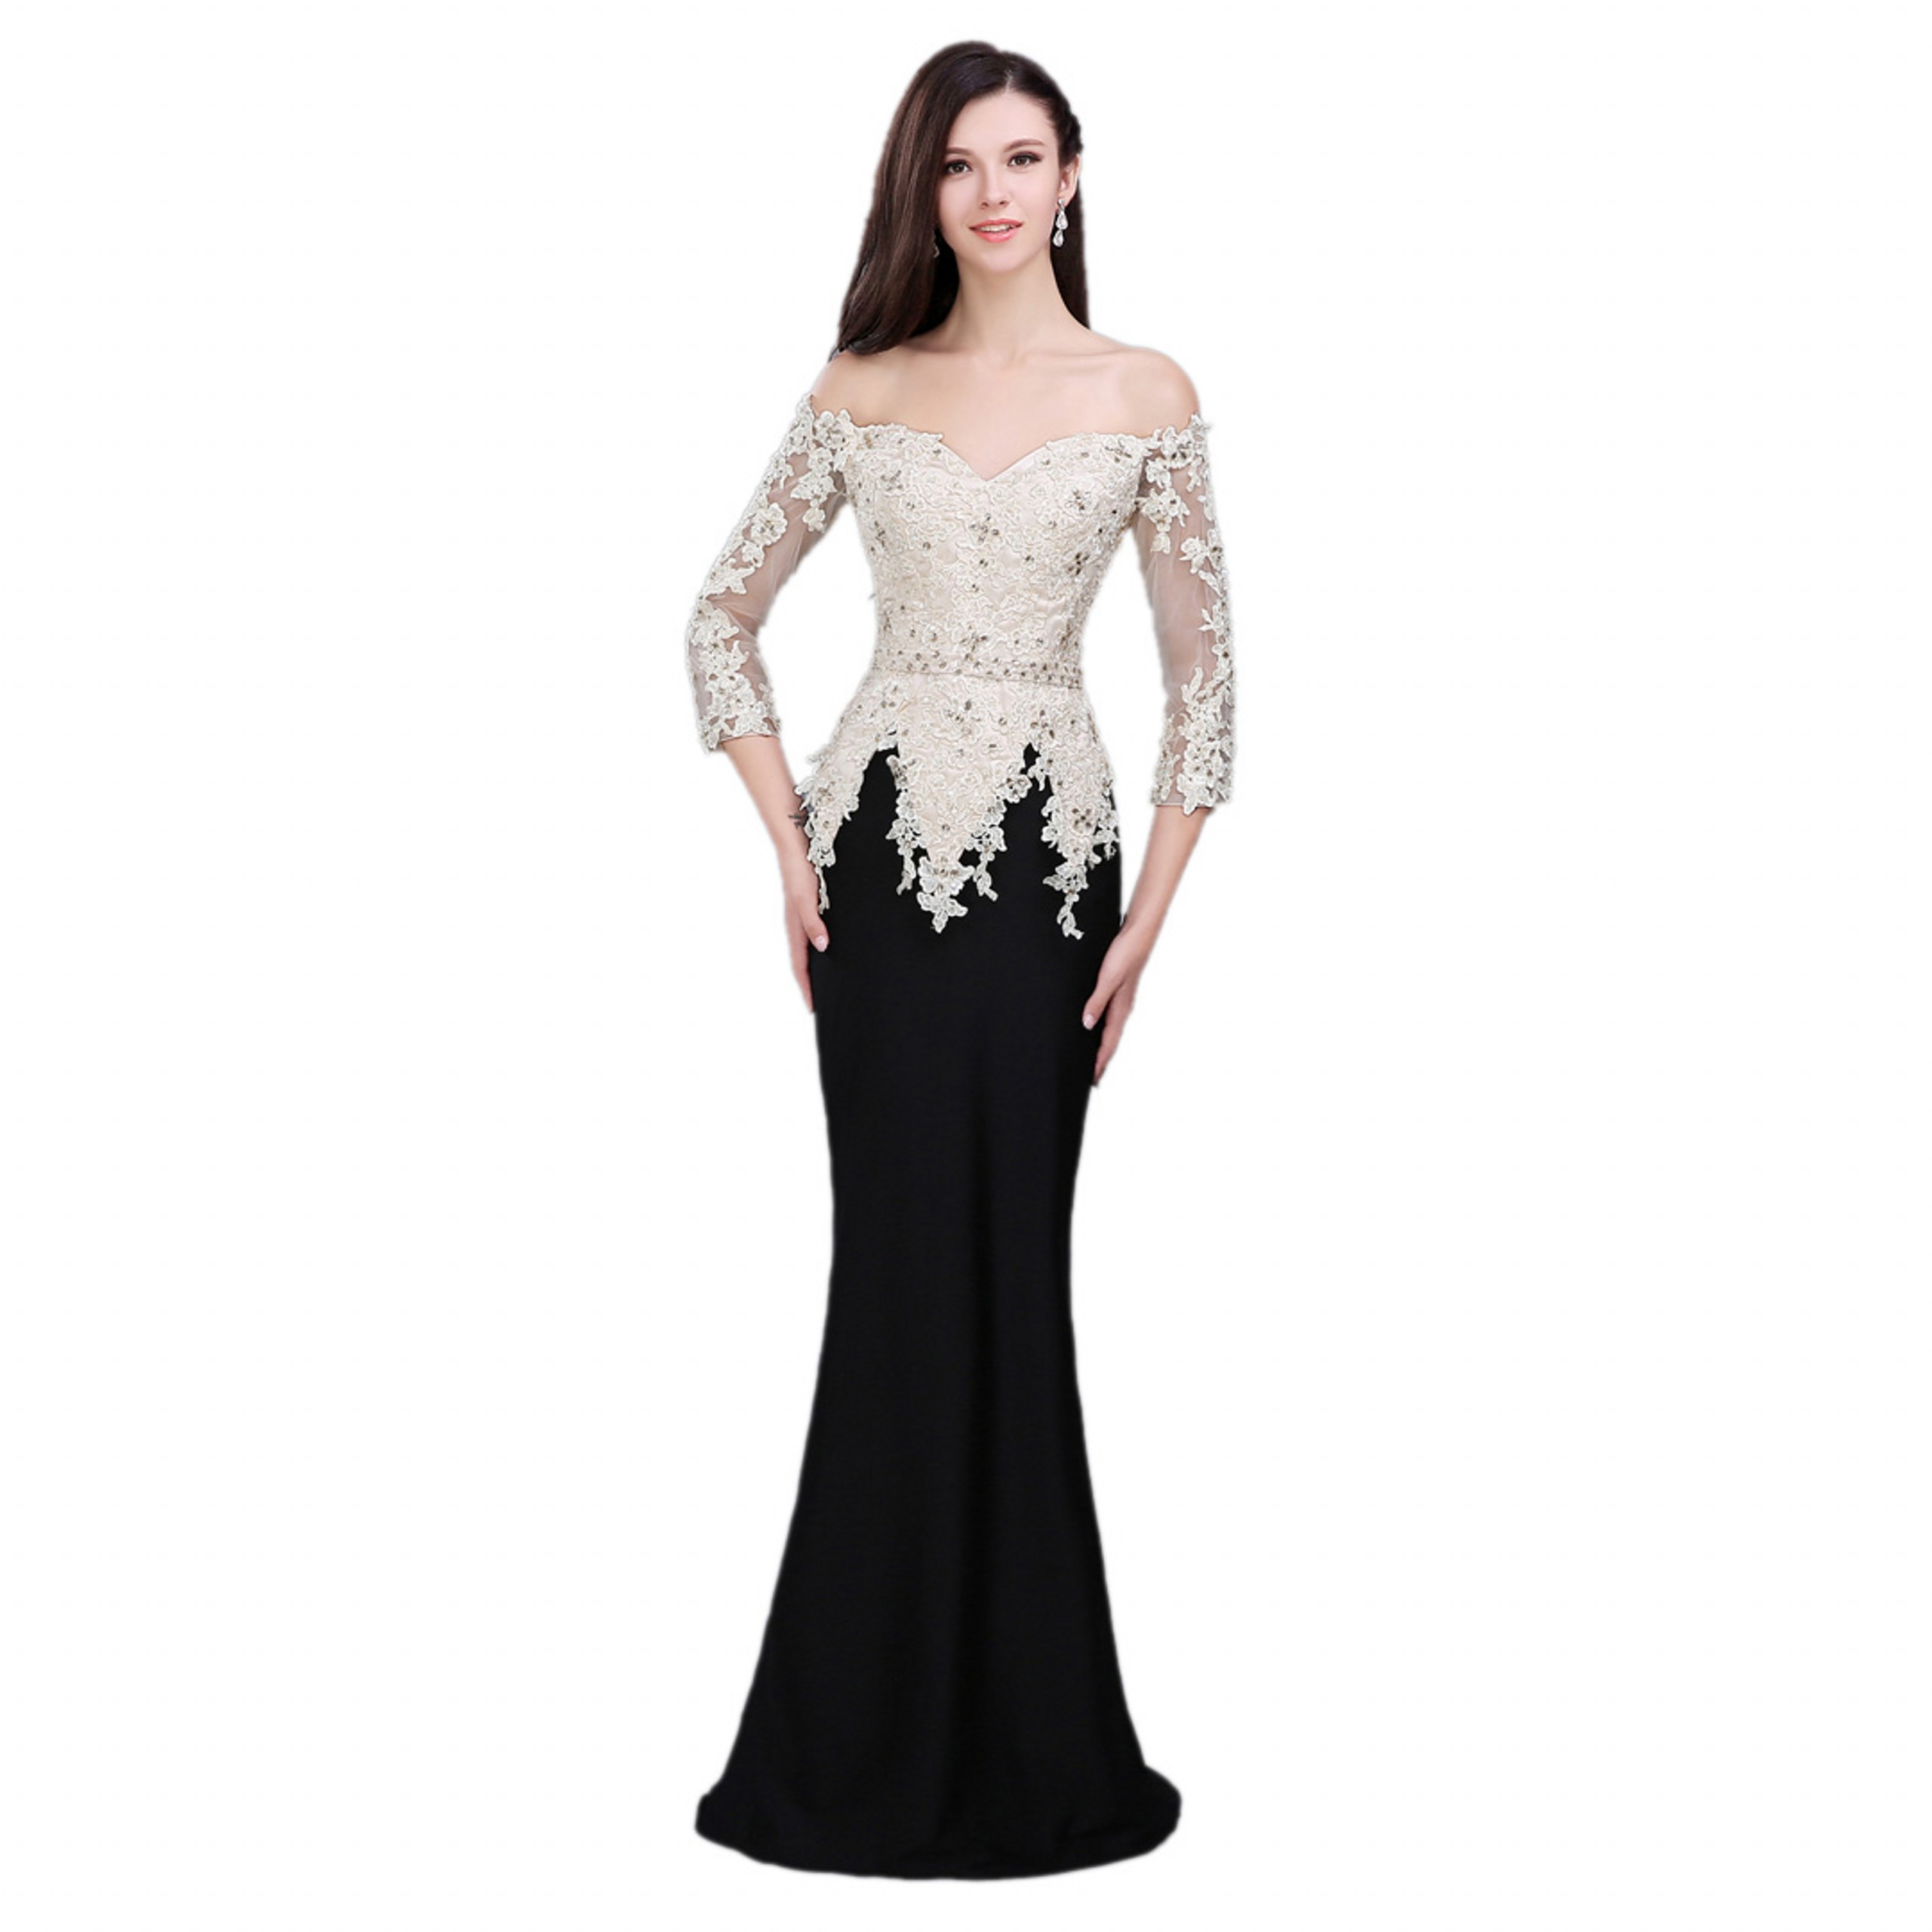 Prom-Gown Party-Dress Tulle Mermaid Evening Formal Black Elegant White Beading Sleeve